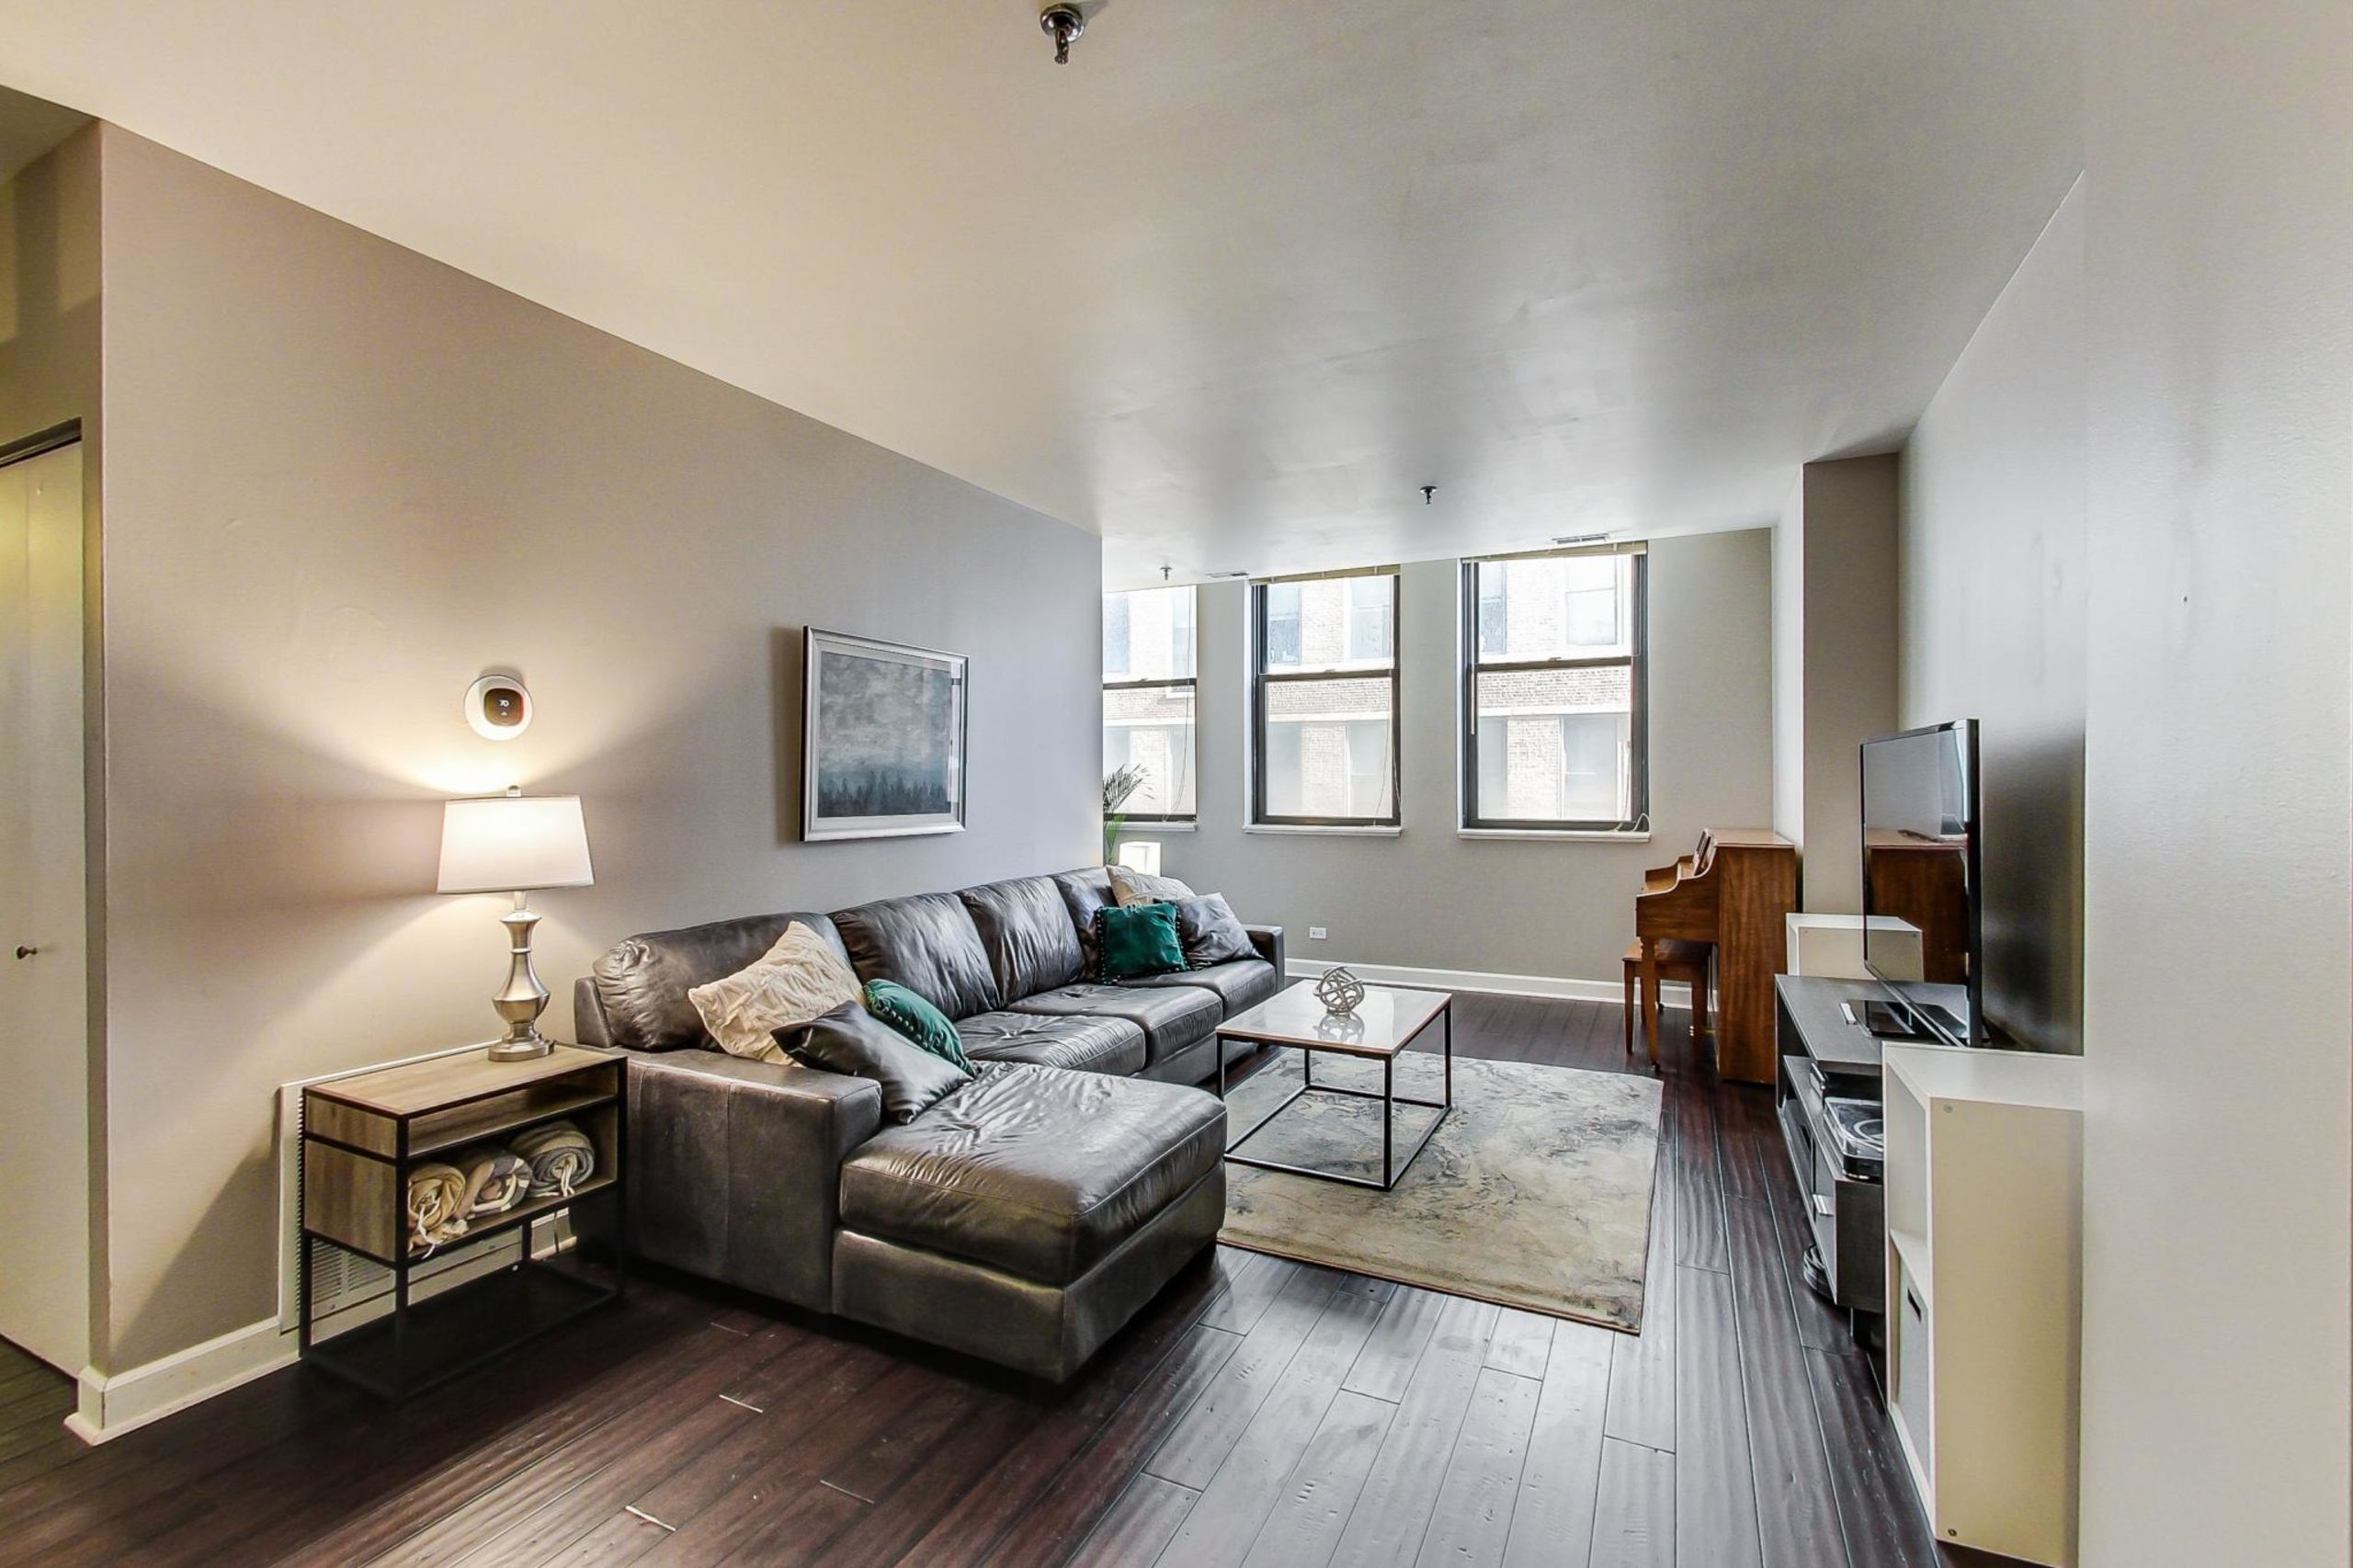 Click Photo For 3D Tour - 780 S. Federal #302